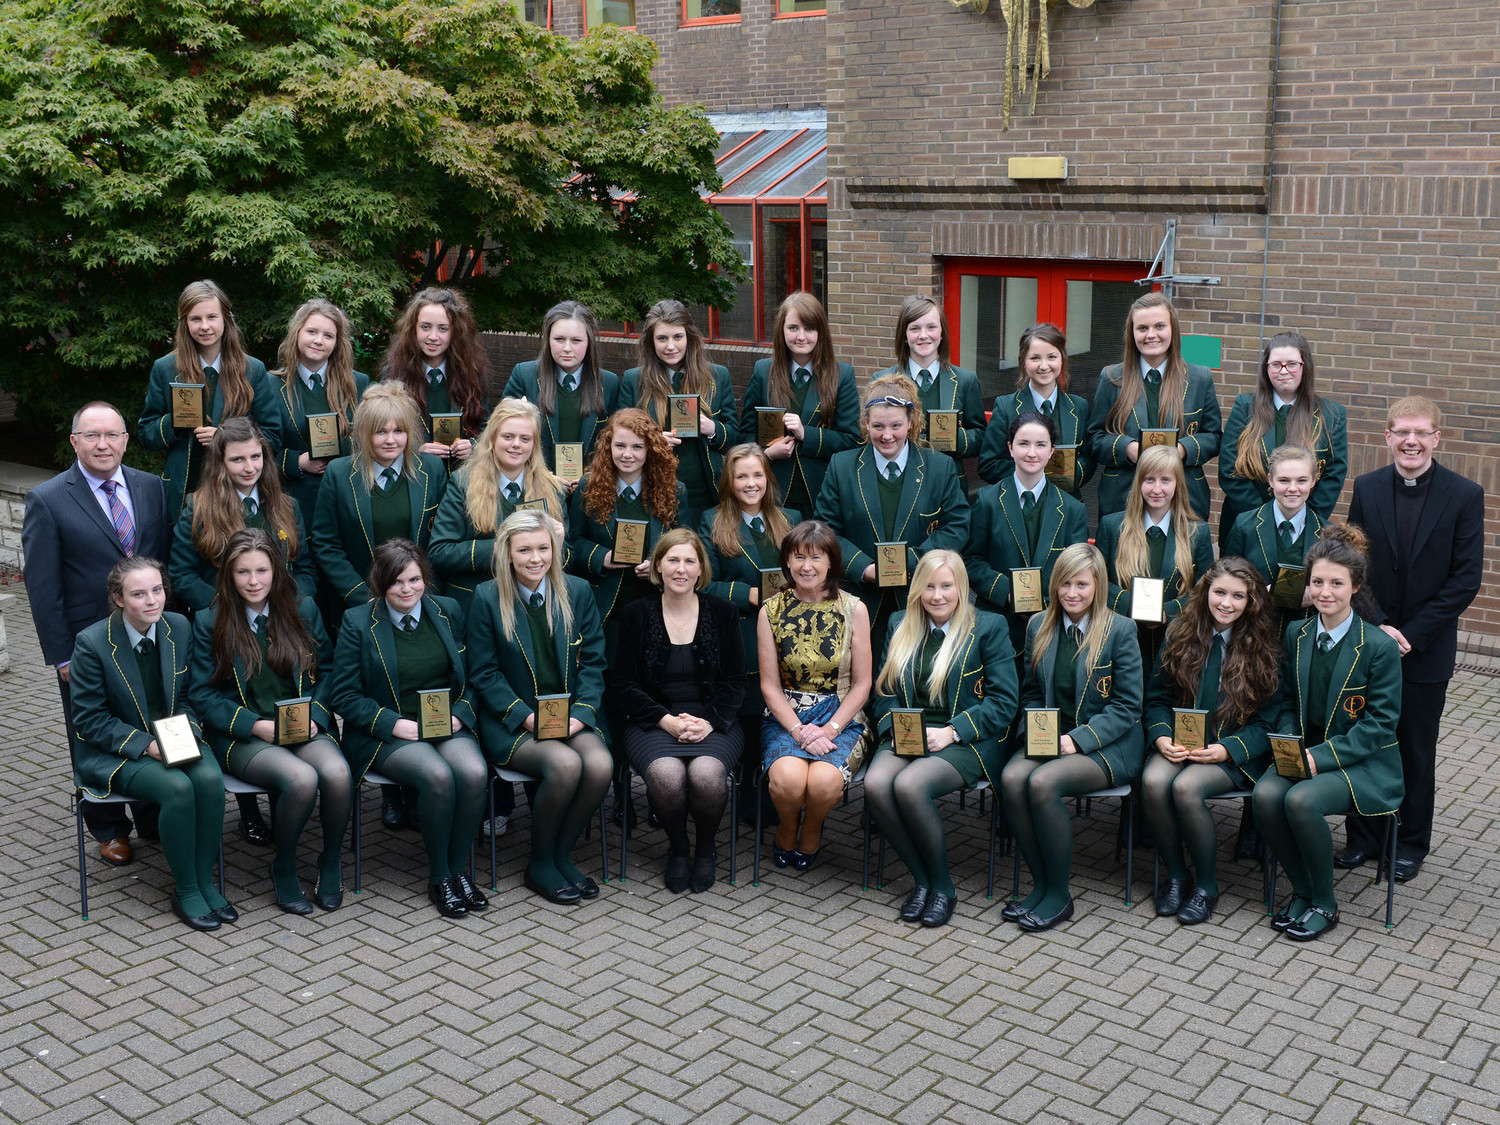 These St Catherine's College pupils all achieved between 8 and 12 A / A* GCSE grades in 2013